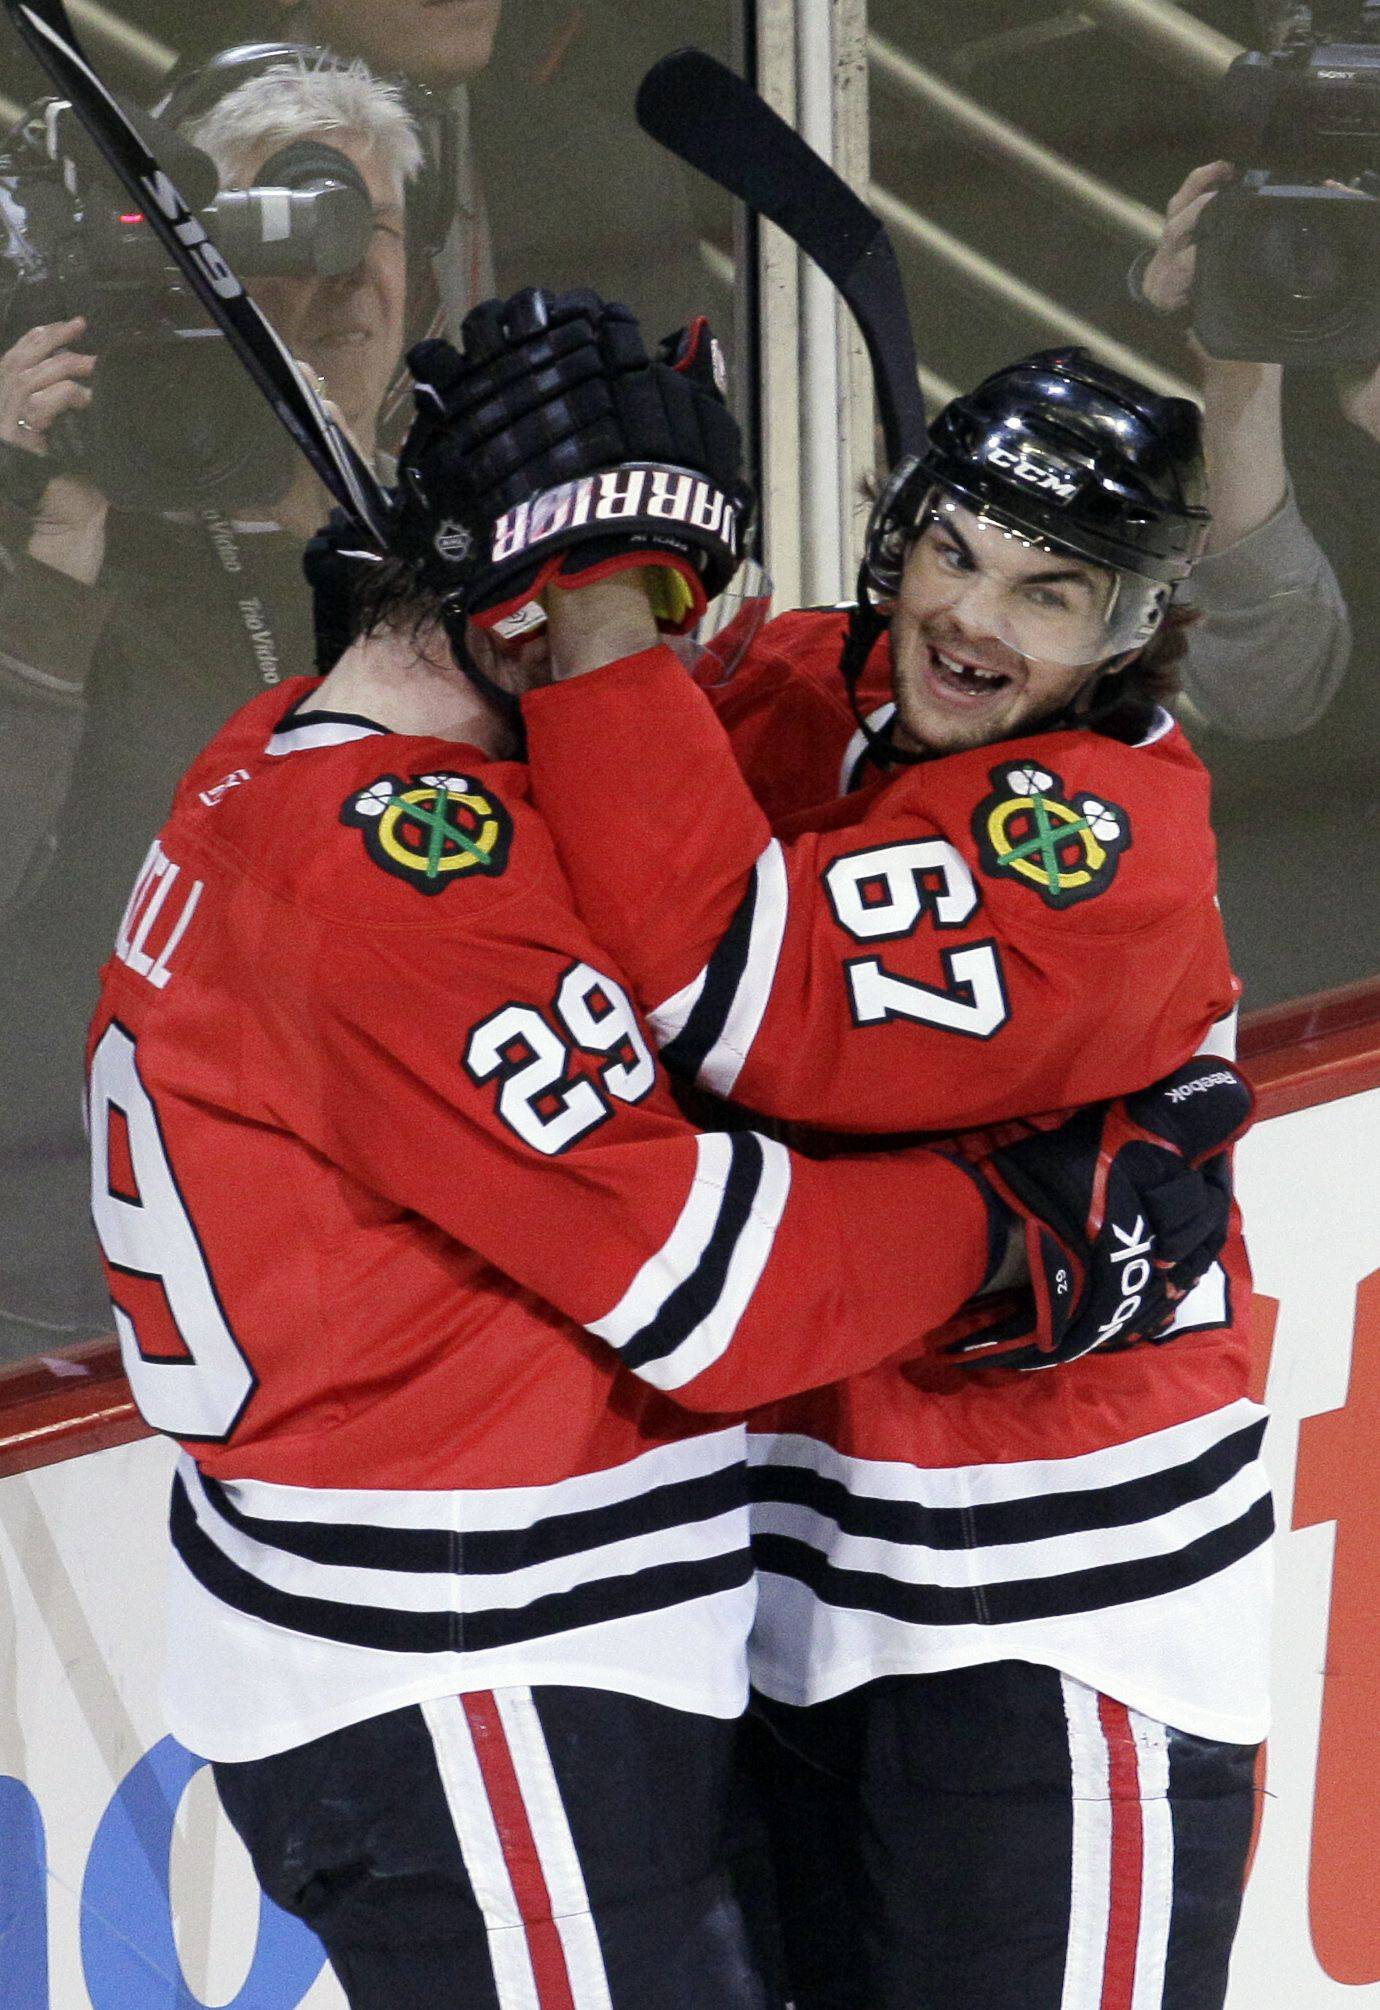 Chicago Blackhawks left wing Bryan Bickell celebrates his first period goal with center Michael Frolik.